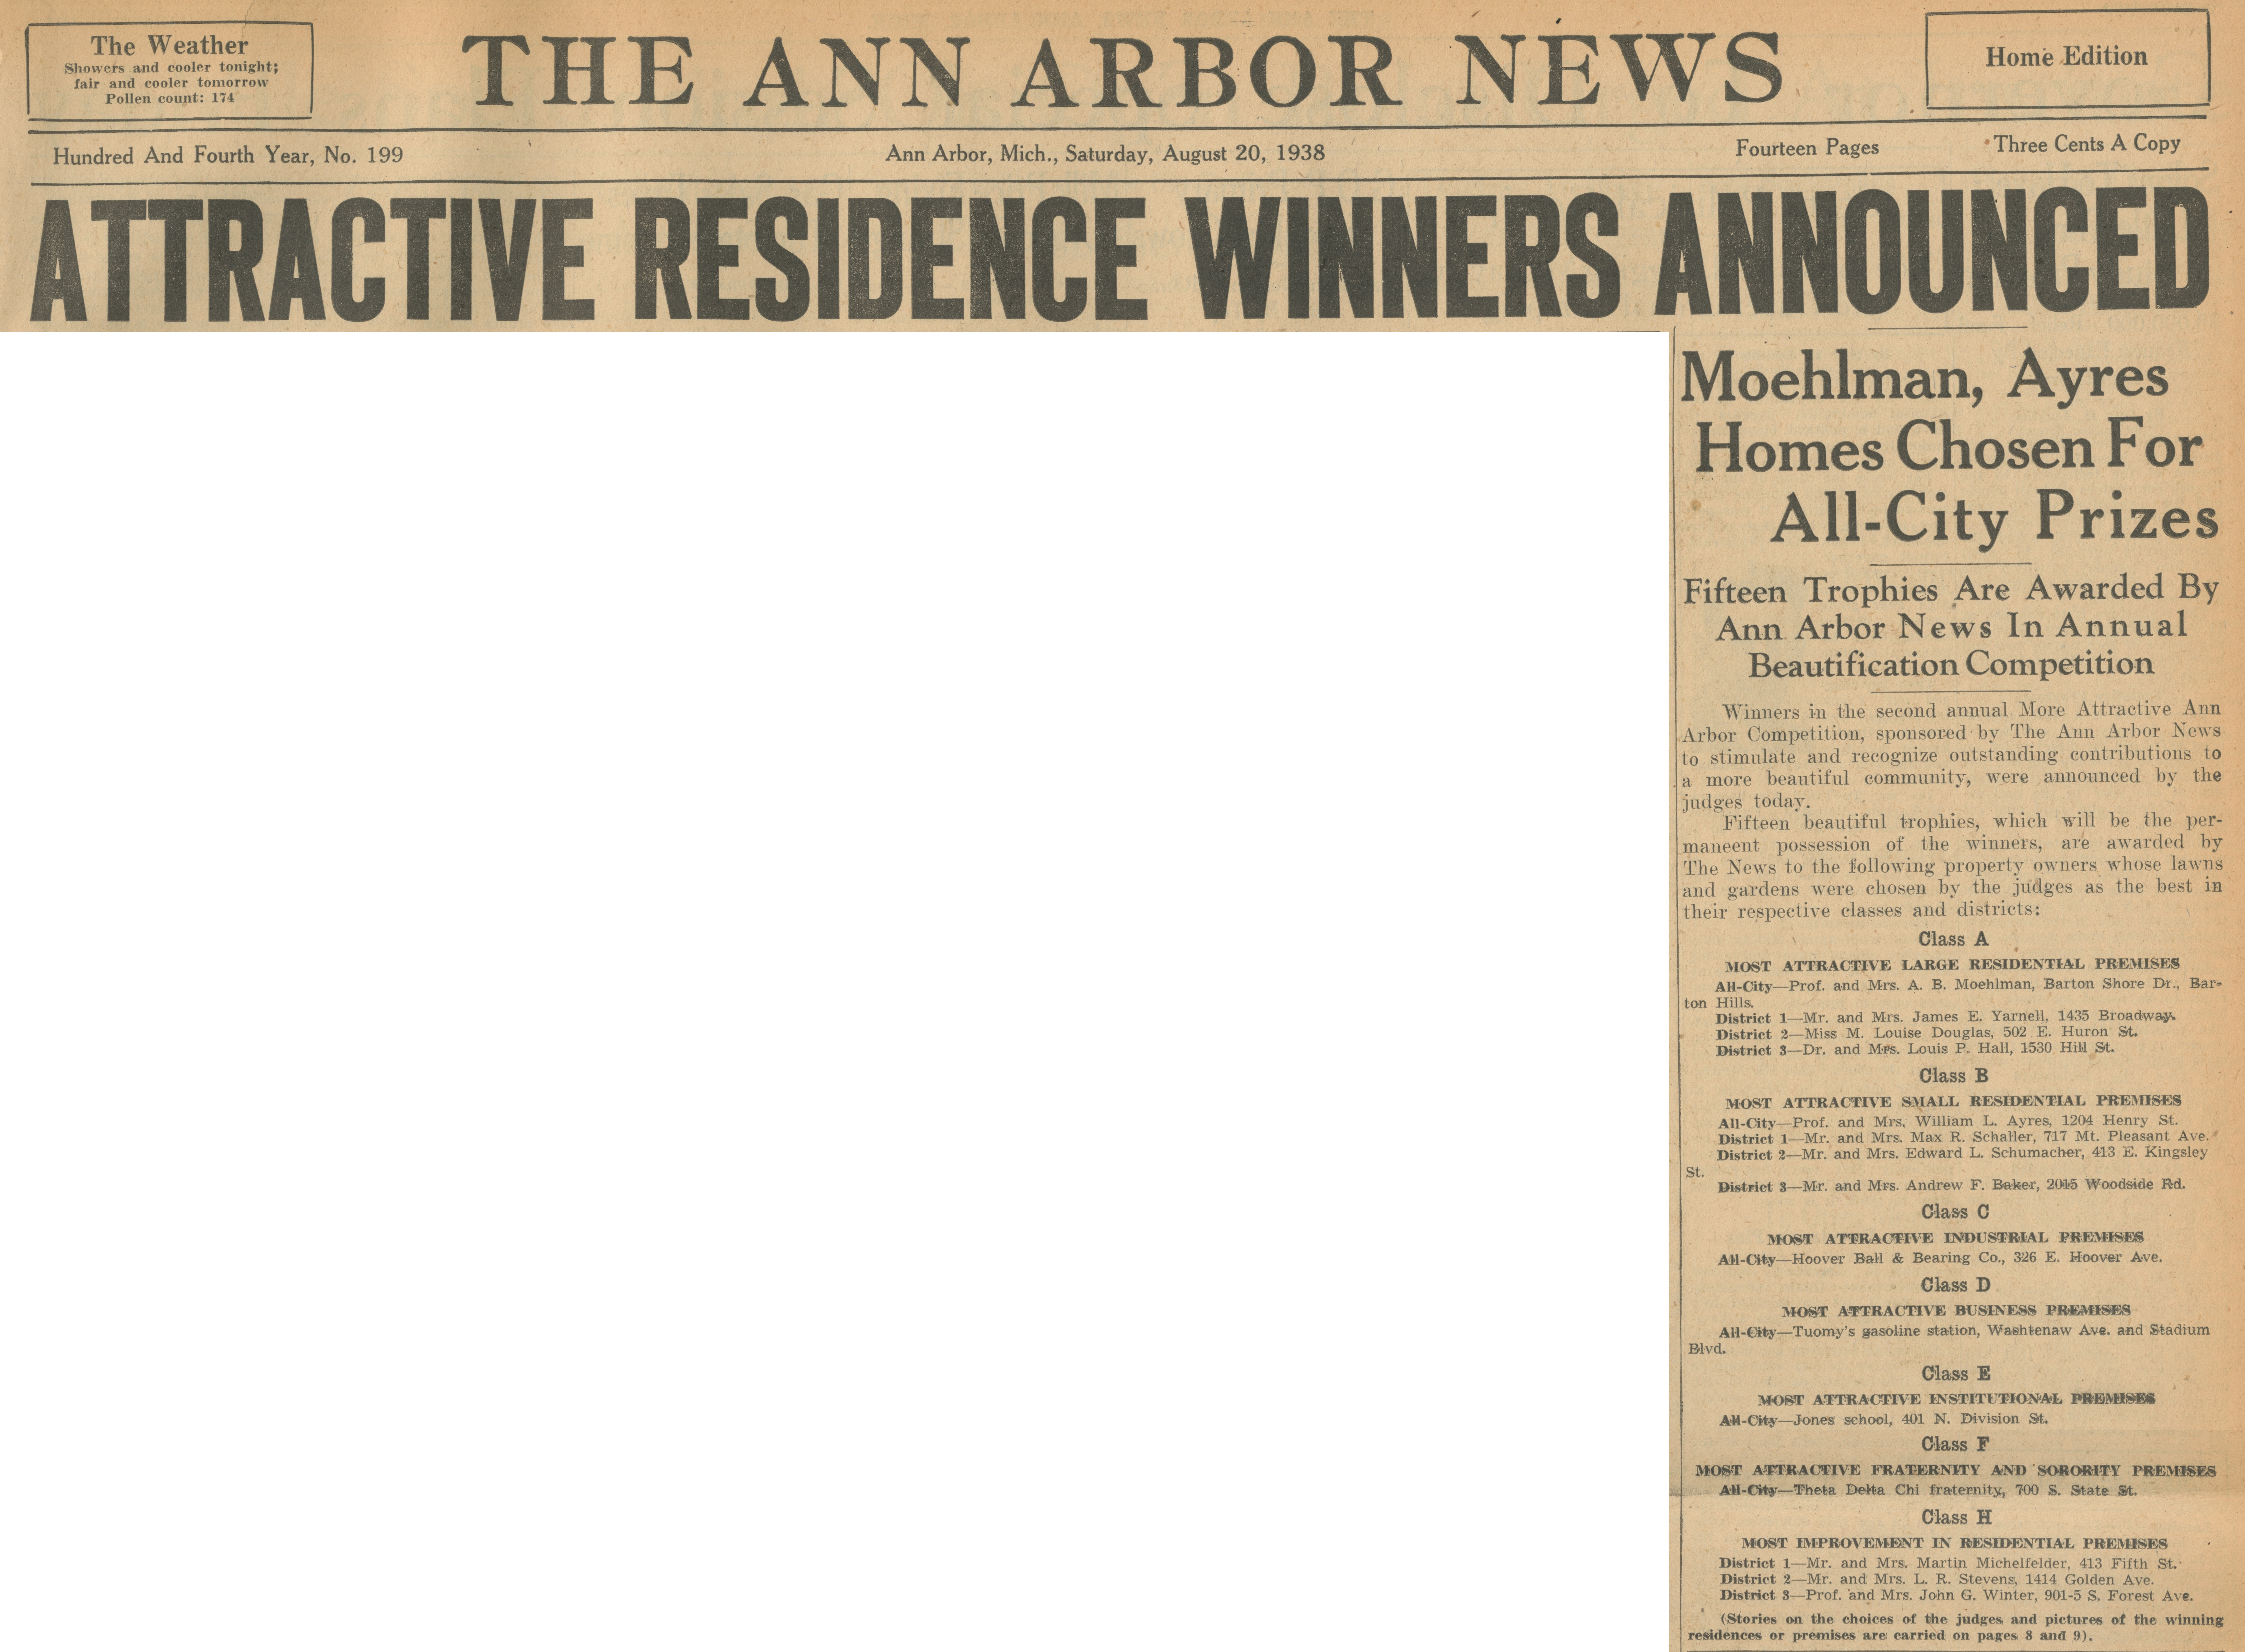 Attractive Residence Winners Announced - Moehlman, Ayers Homes Chosen For All-City Prizes - Fifteen Trophies Are Awarded By Ann Arbor News In Annual Beautification Competition image